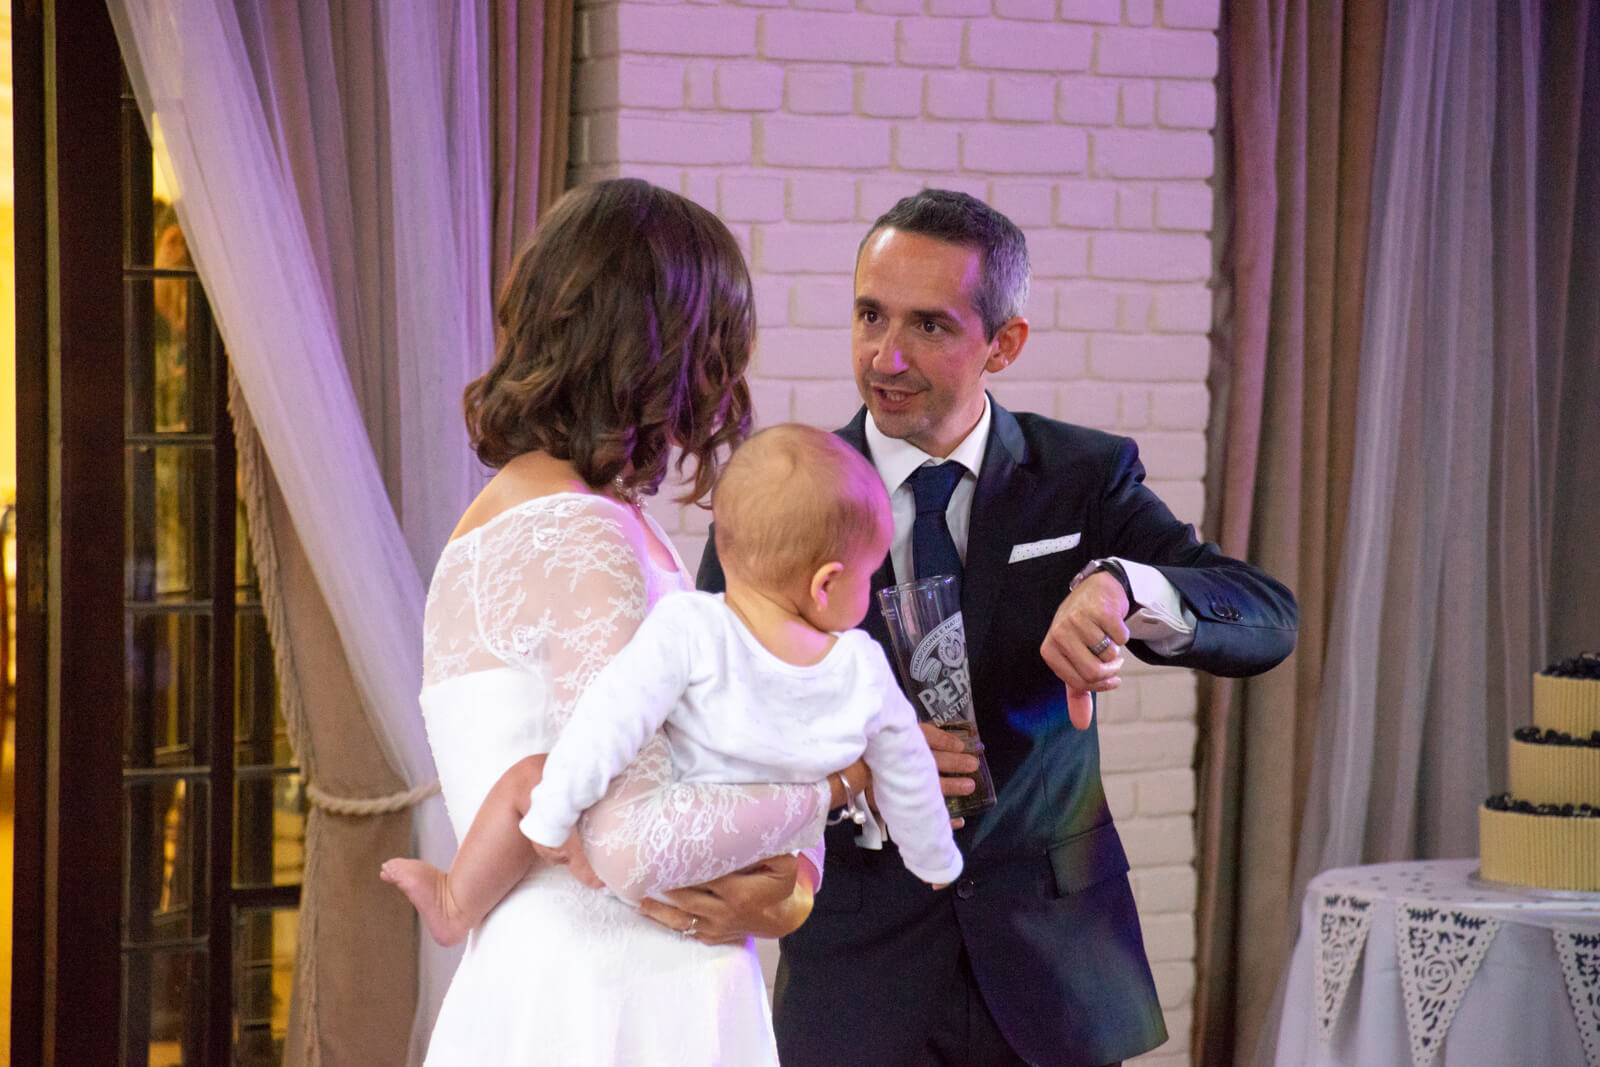 Groom looks at his watch while bride holds their baby